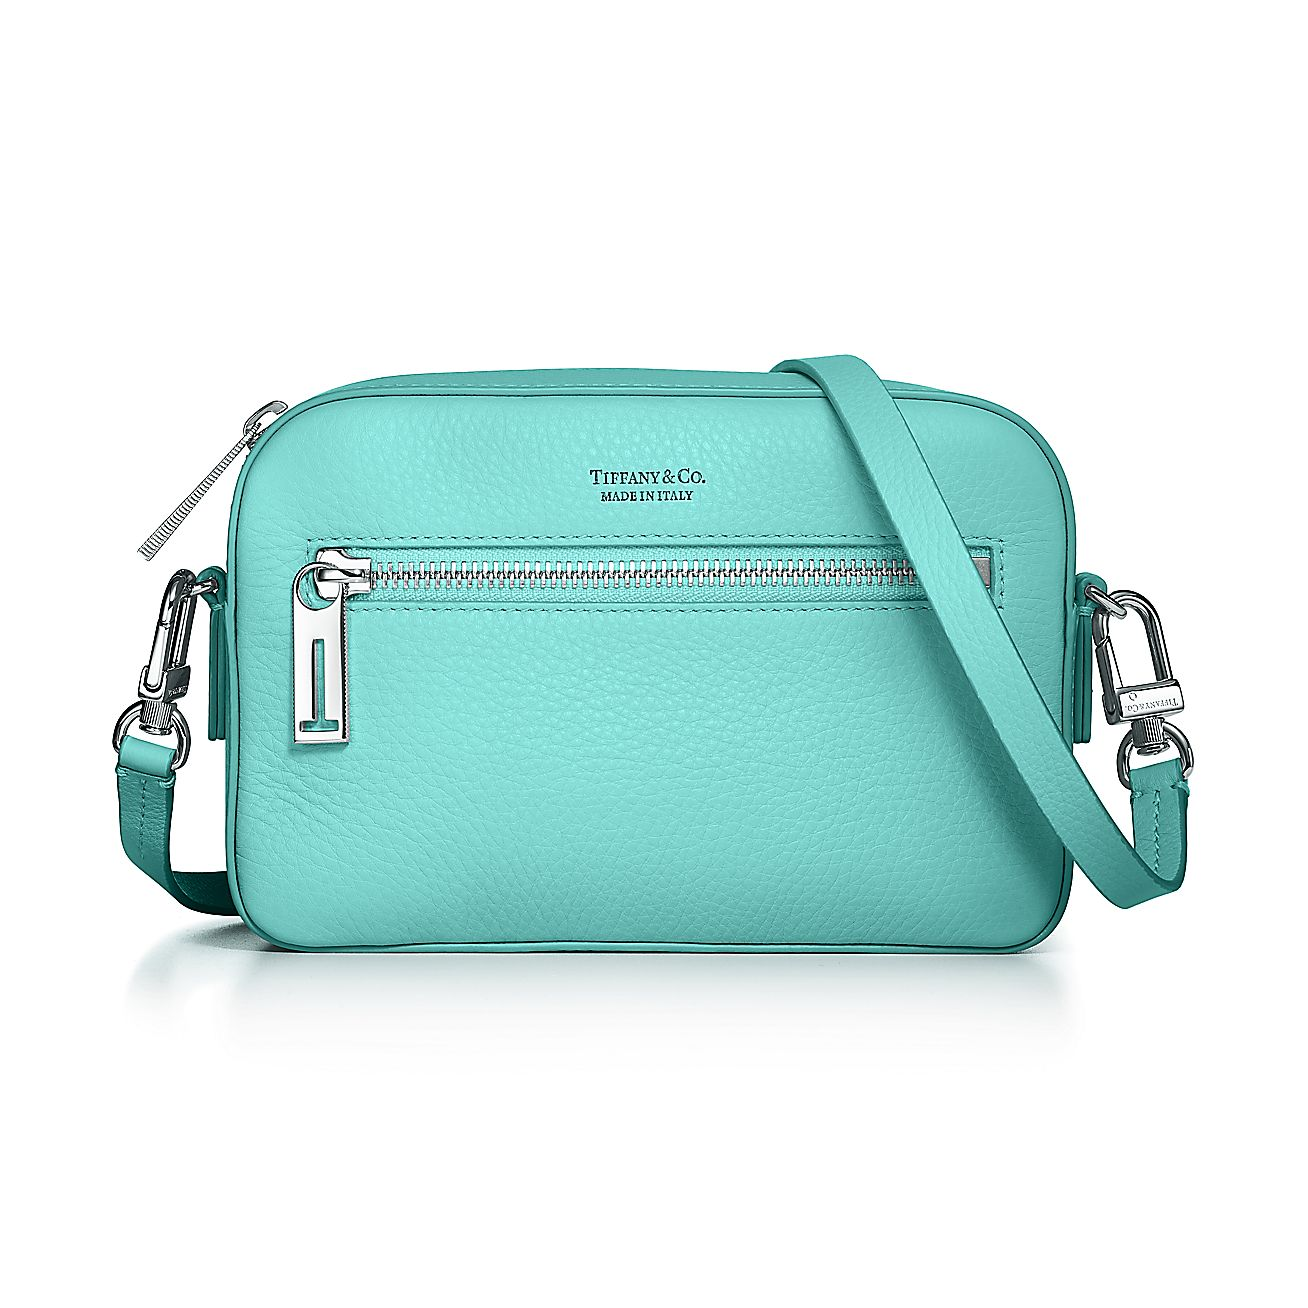 Crossbody Bag In Tiffany Blue Grain